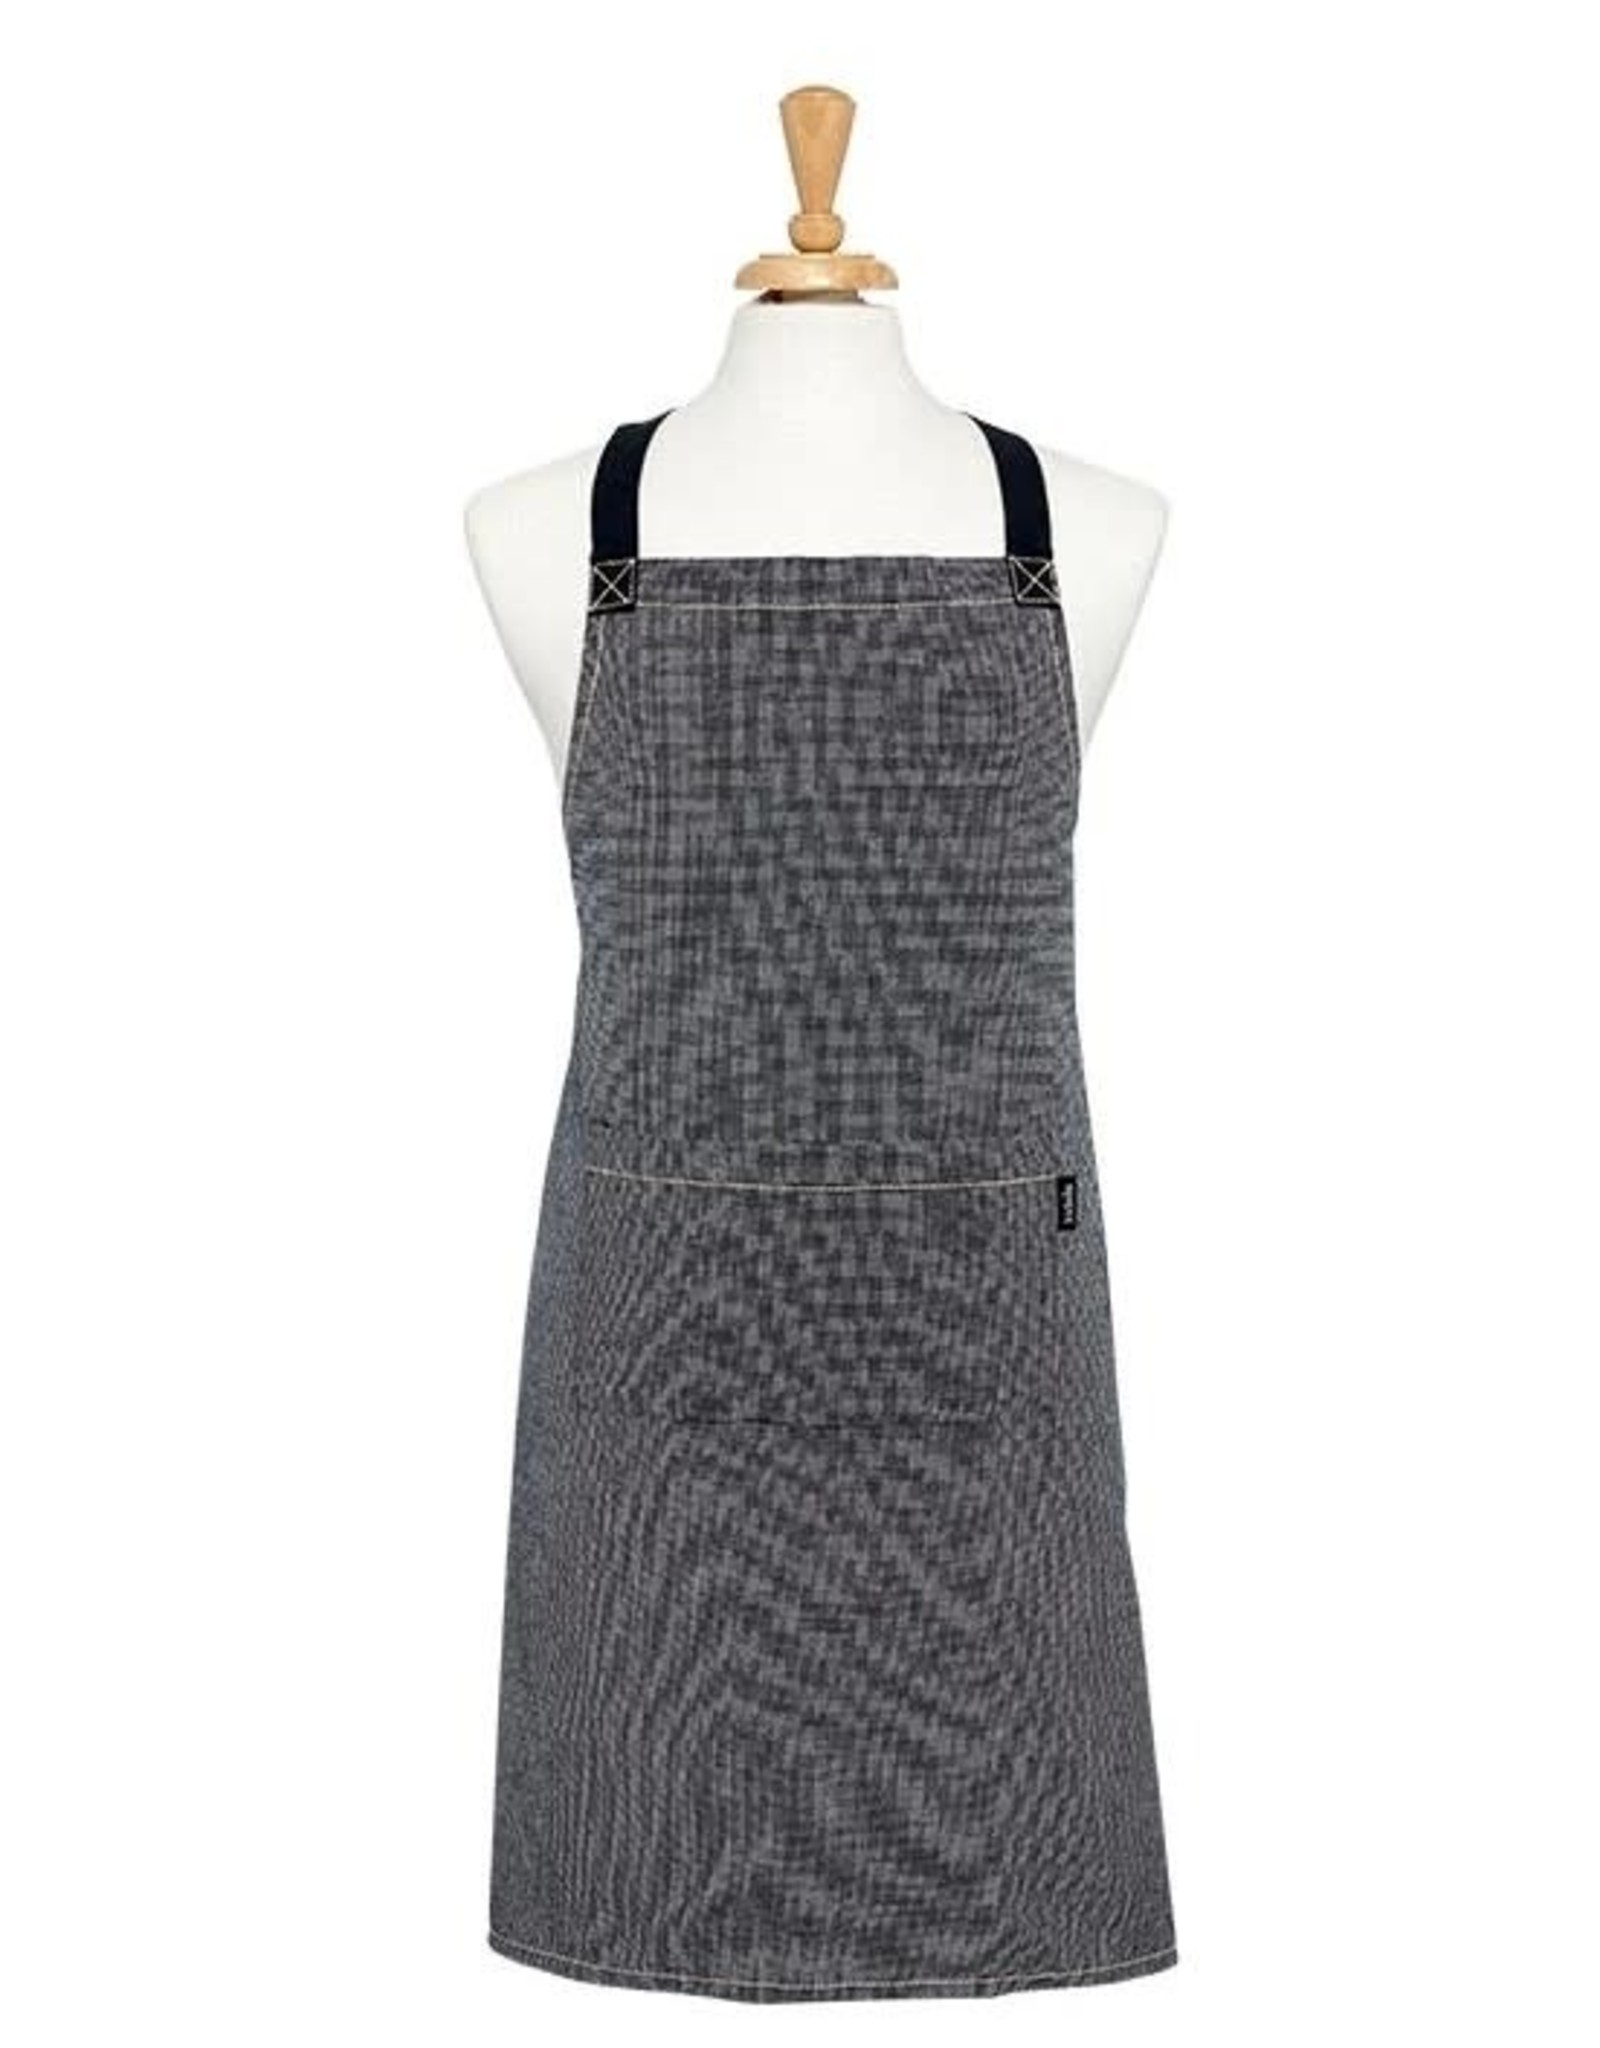 Ladelle Eco Recycled Apron